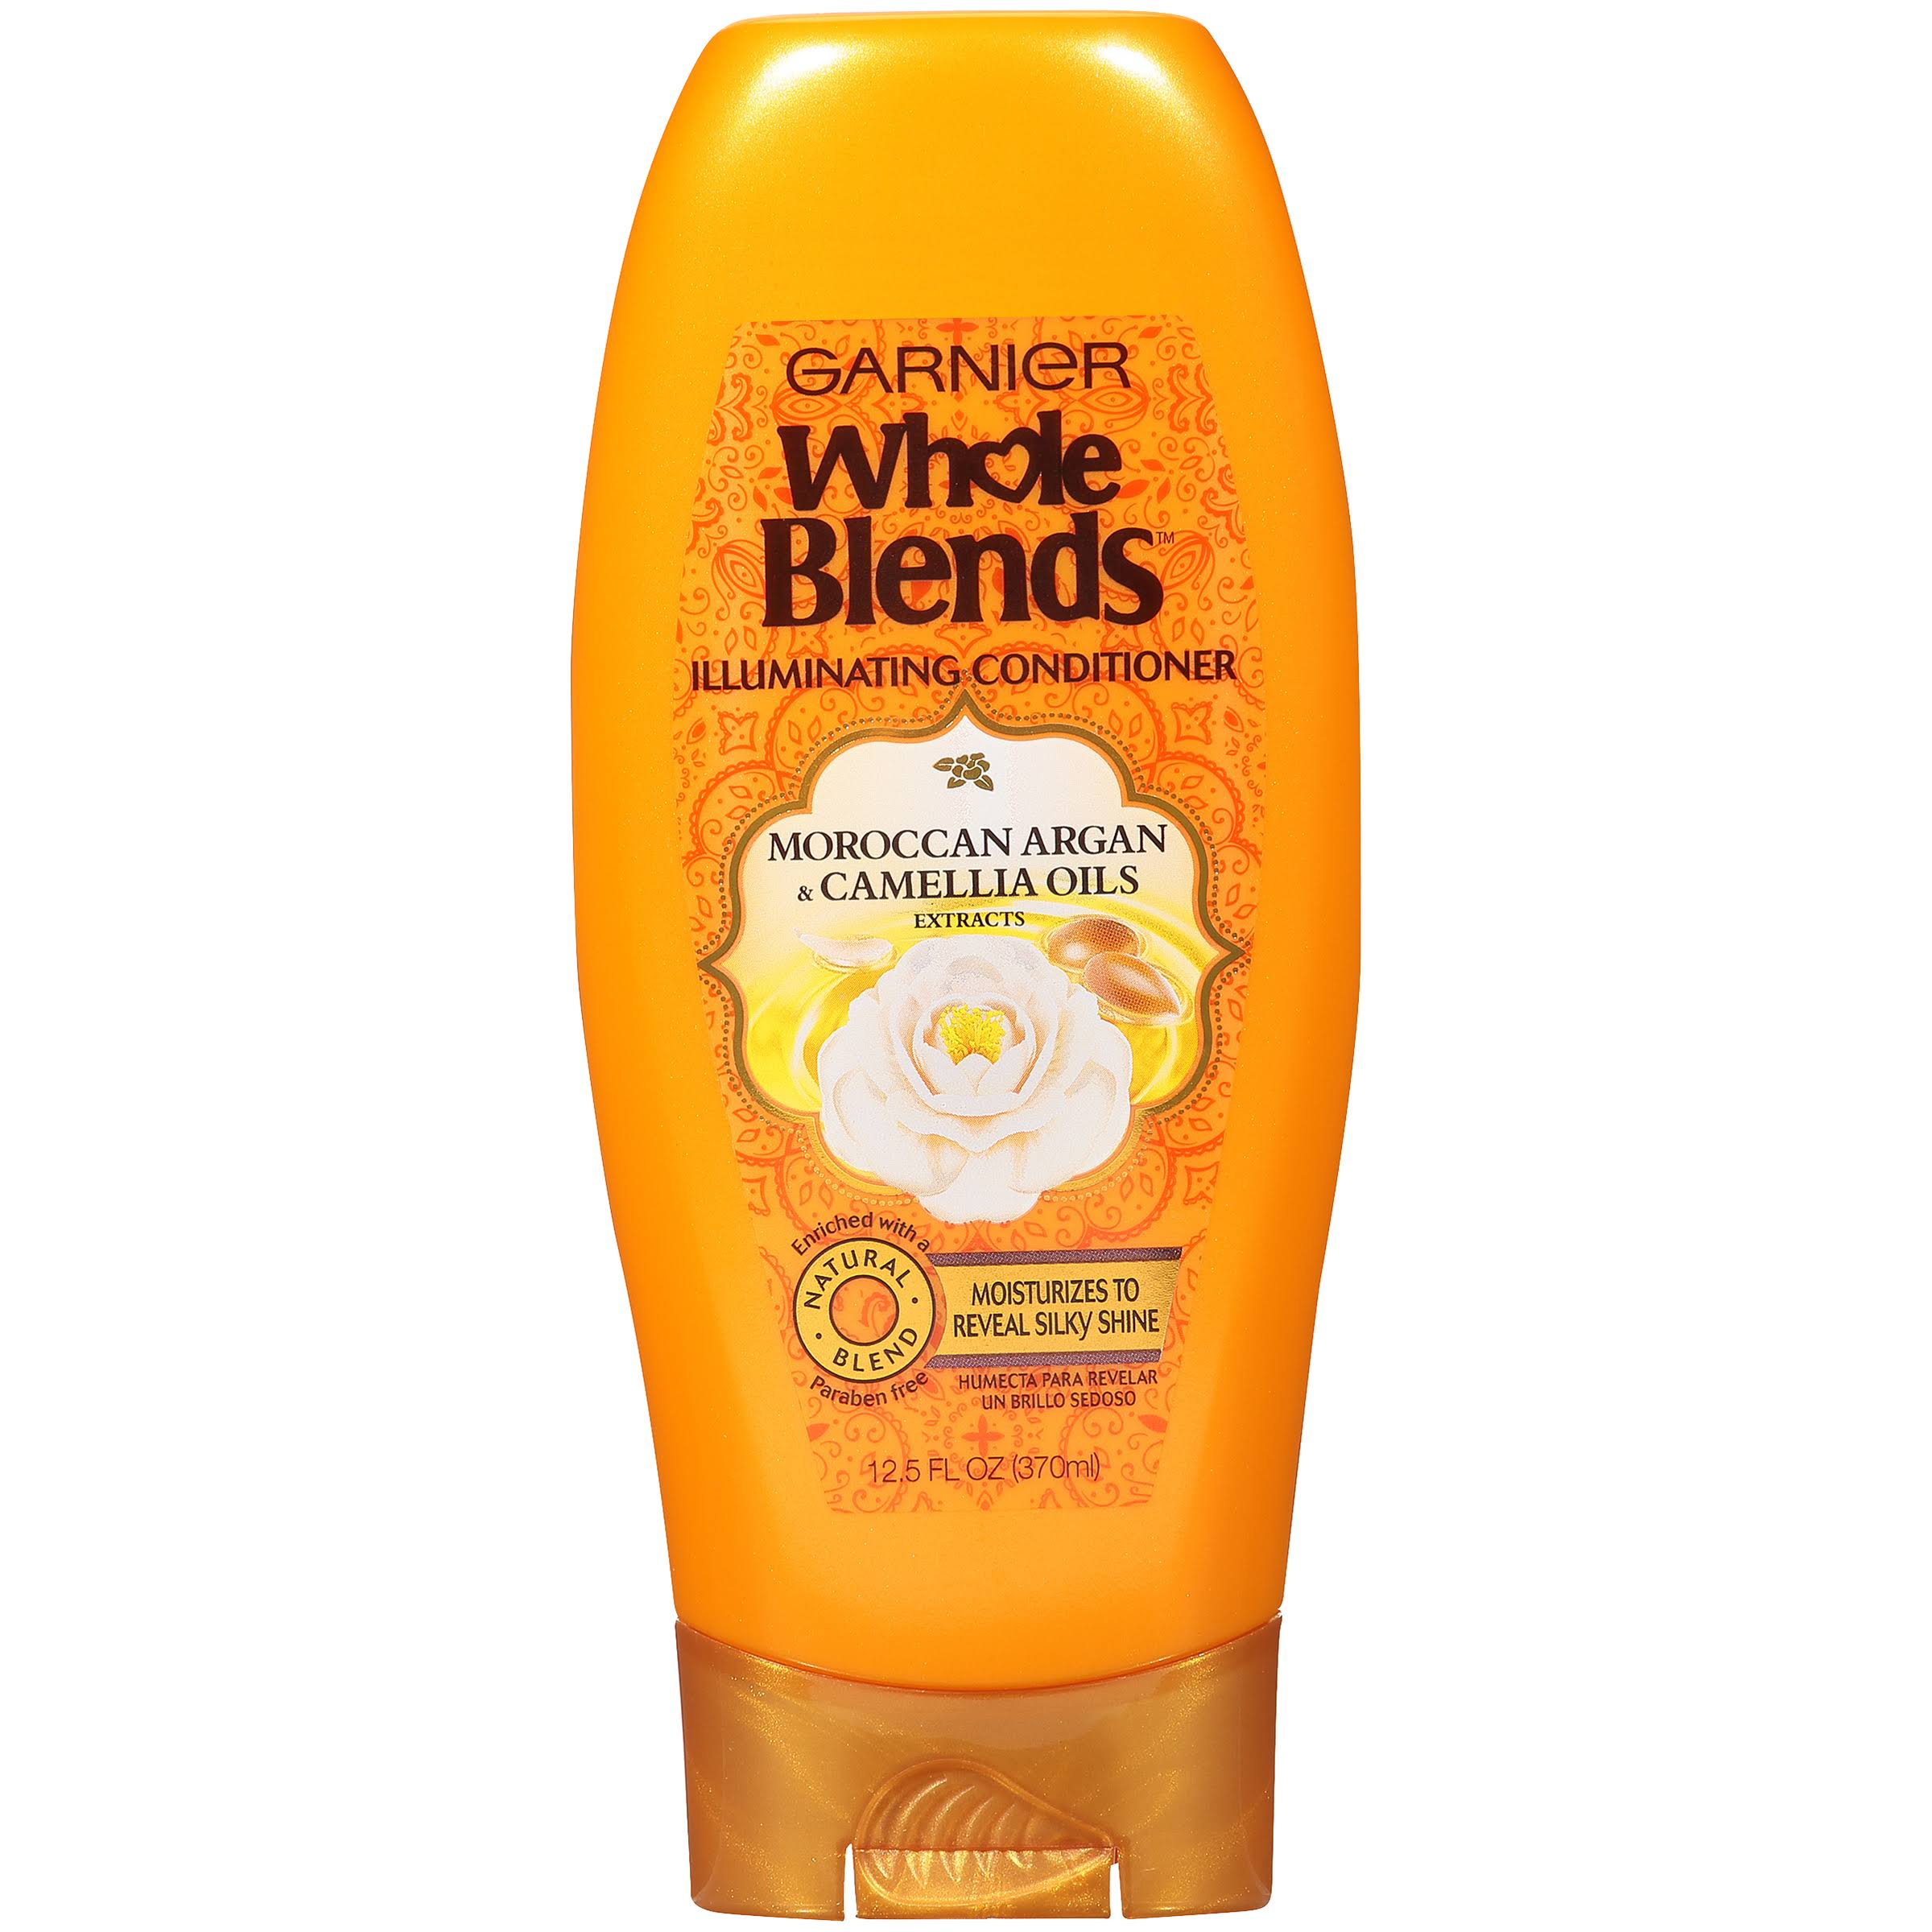 Garnier Whole Blends Illuminating Conditioner Moroccan Argan and Camellia Oils Extracts - 12.5oz